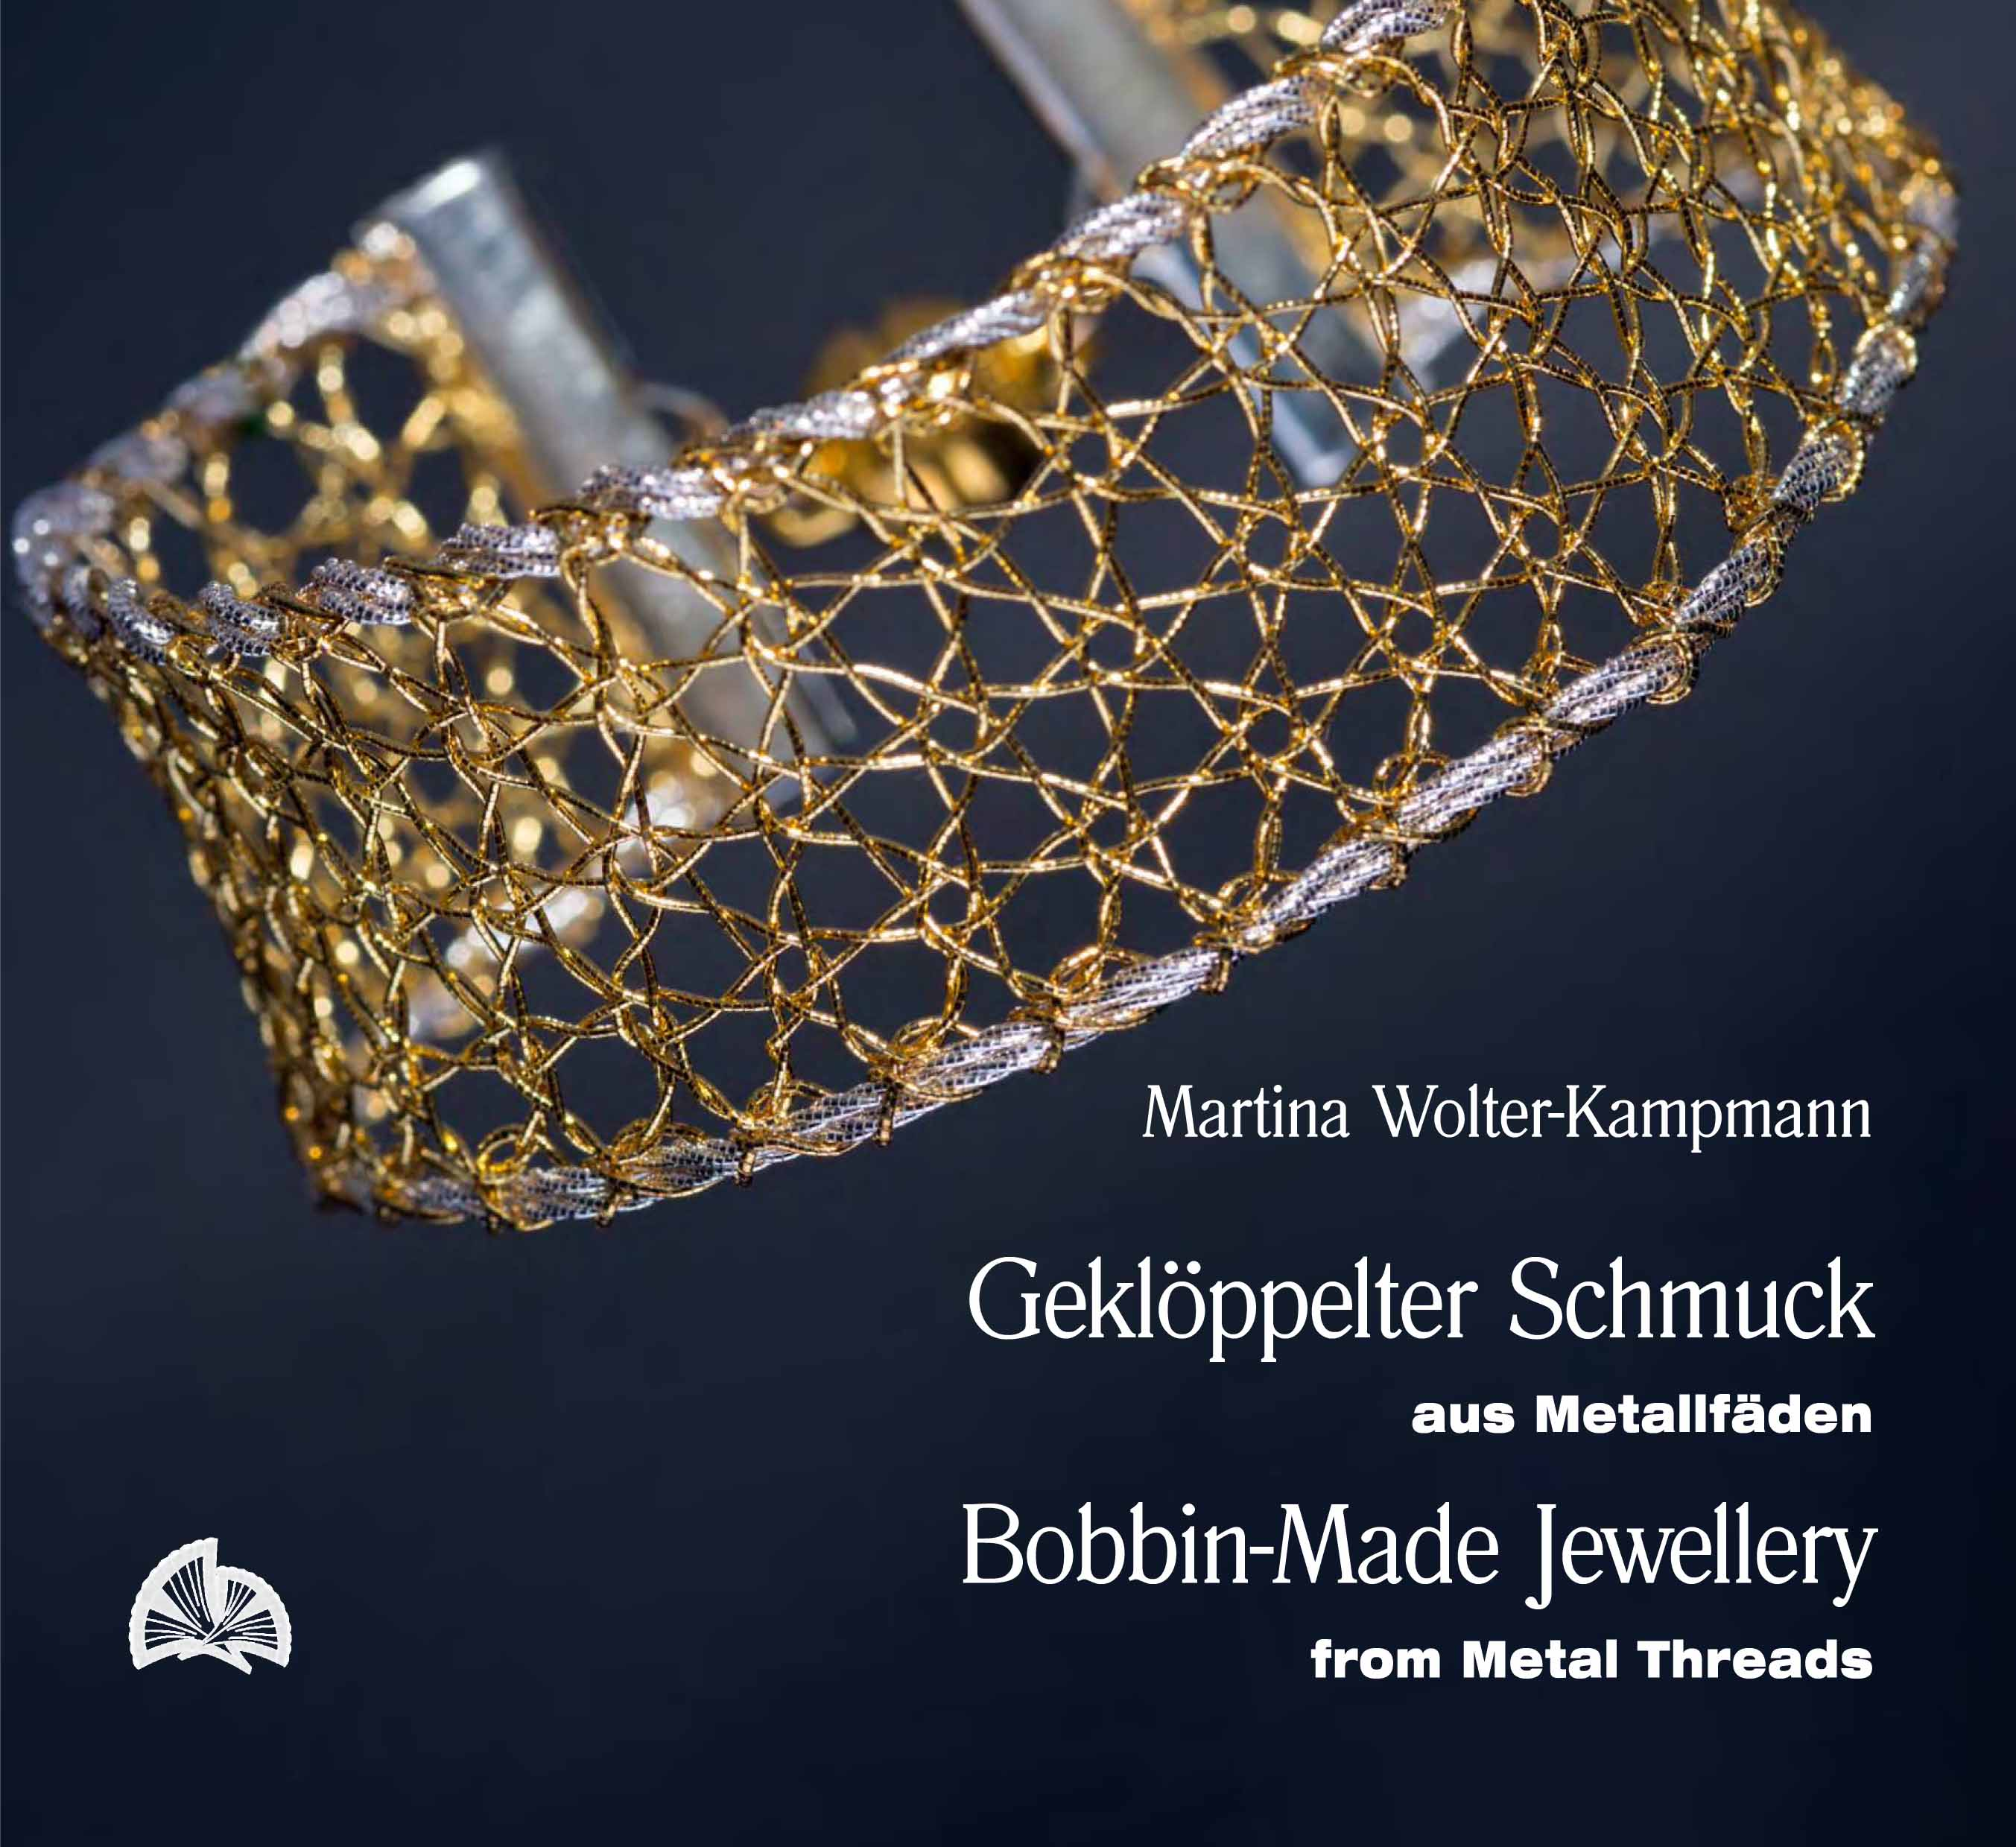 Bobbin-made Jewellery with Metal Threads by Martina Wolter-Kampmann